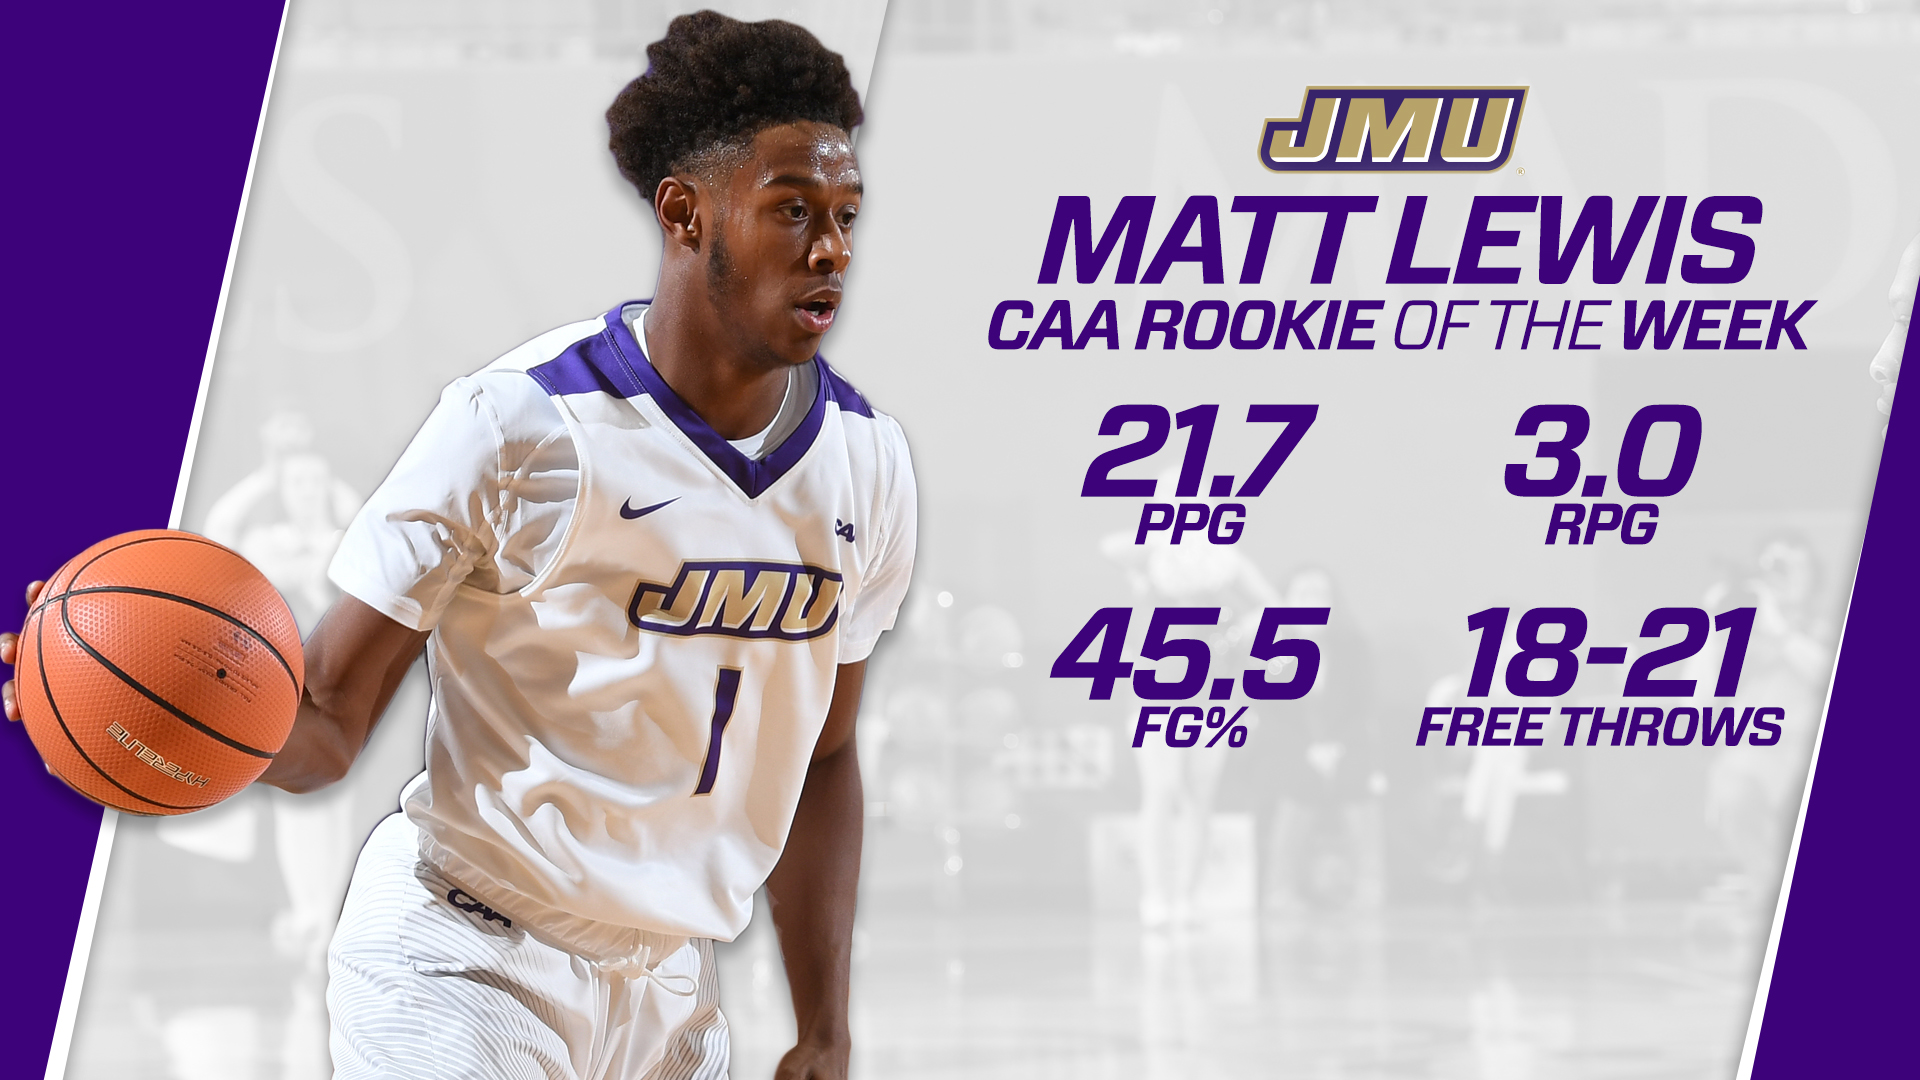 Men's Basketball: Lewis Named CAA Rookie of the Week for Fourth Time)